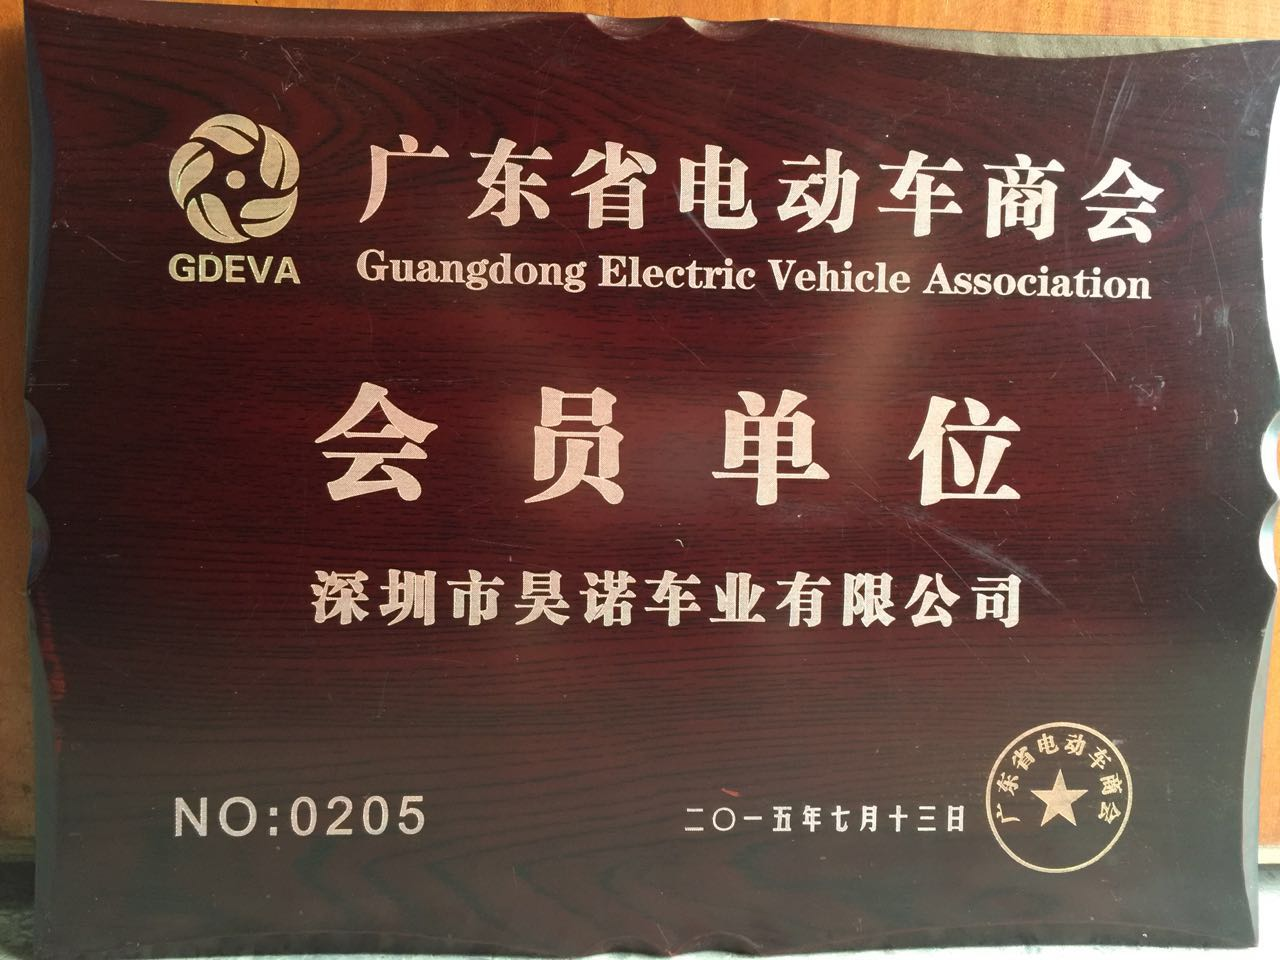 Guangdong Elecgric Vehicle Association chamber of commerce member units